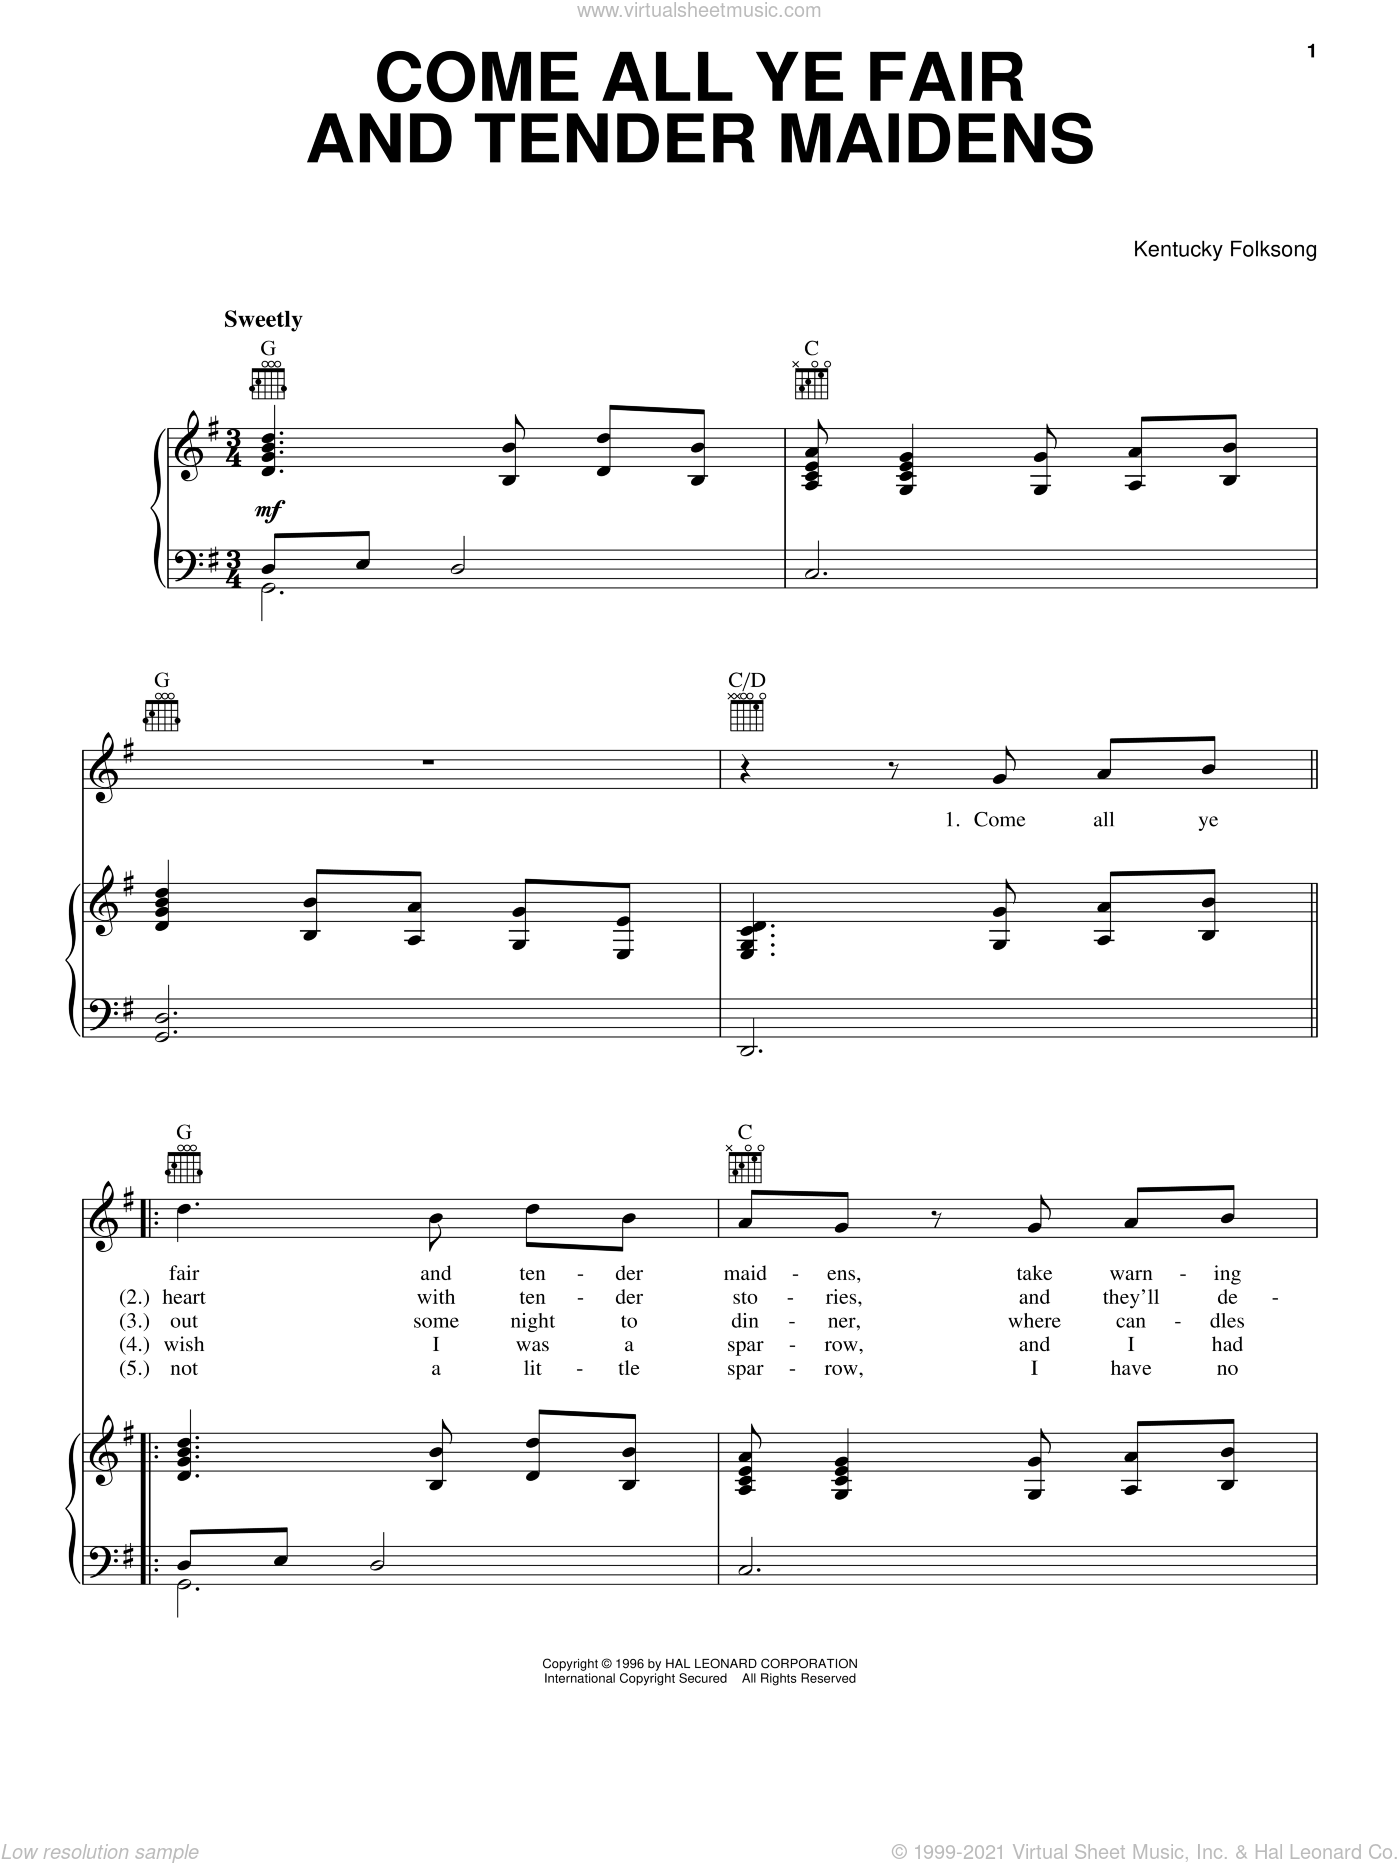 Come All Ye Fair And Tender Maidens sheet music for voice, piano or guitar by Kentucky Folksong